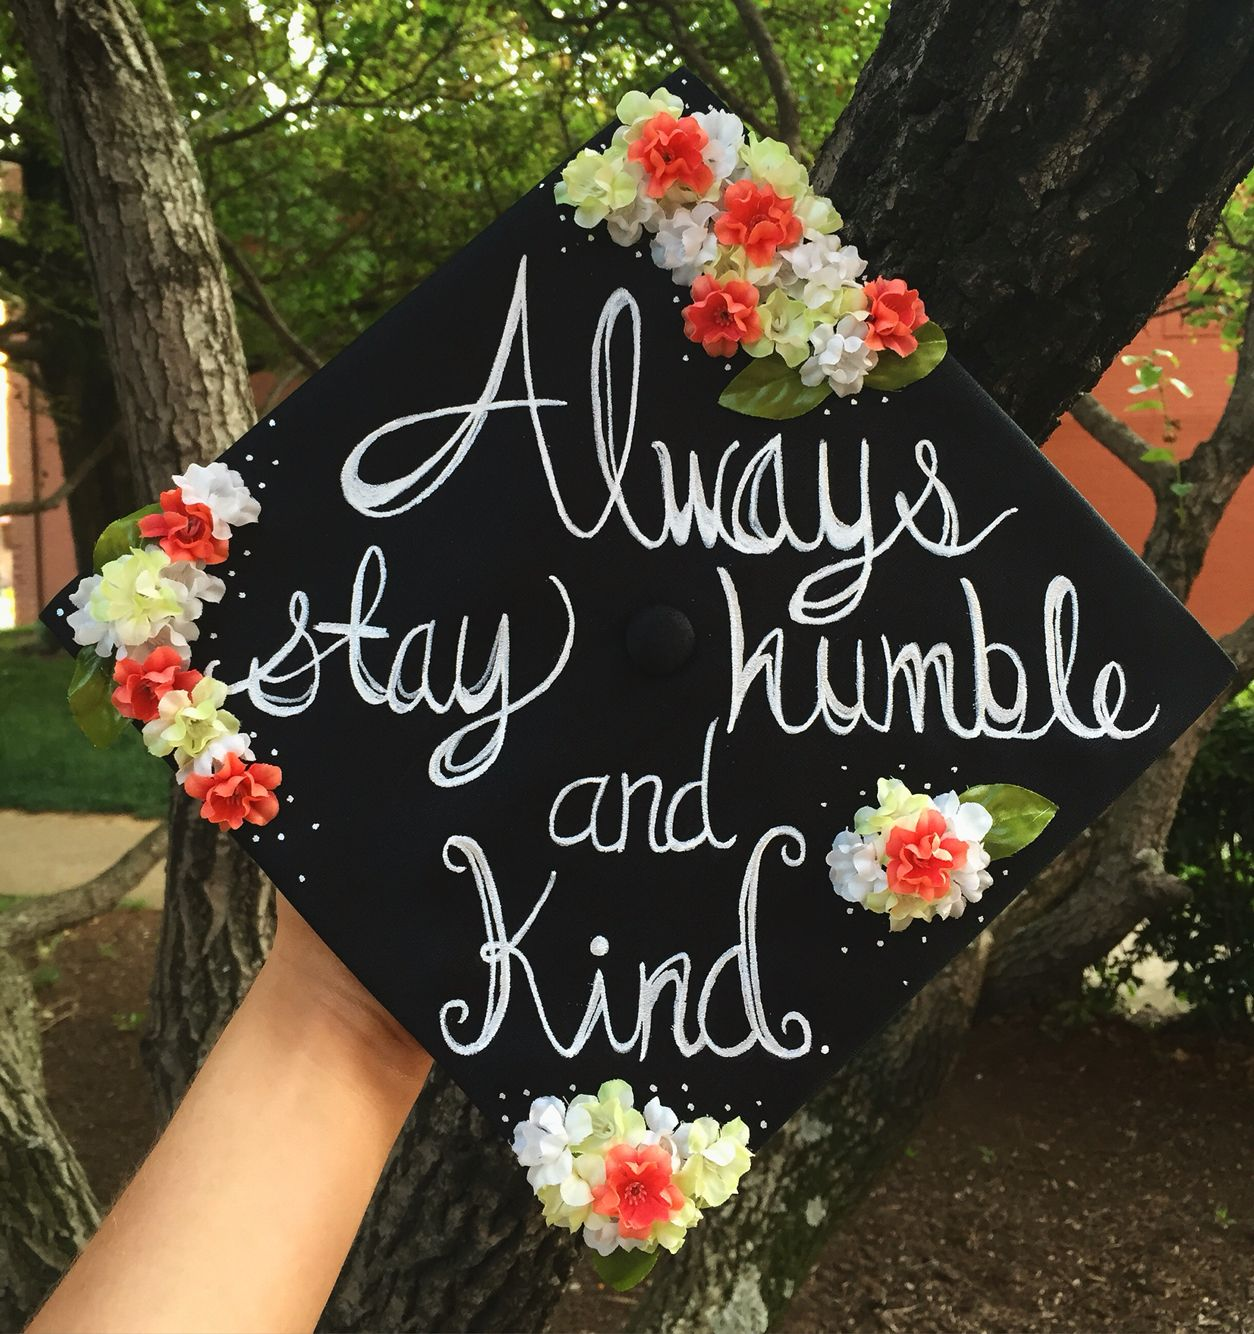 Decorating graduation cap ideas for teachers - Save This Diy Inspirational Quote Design For Your Graduation Cap Decoration